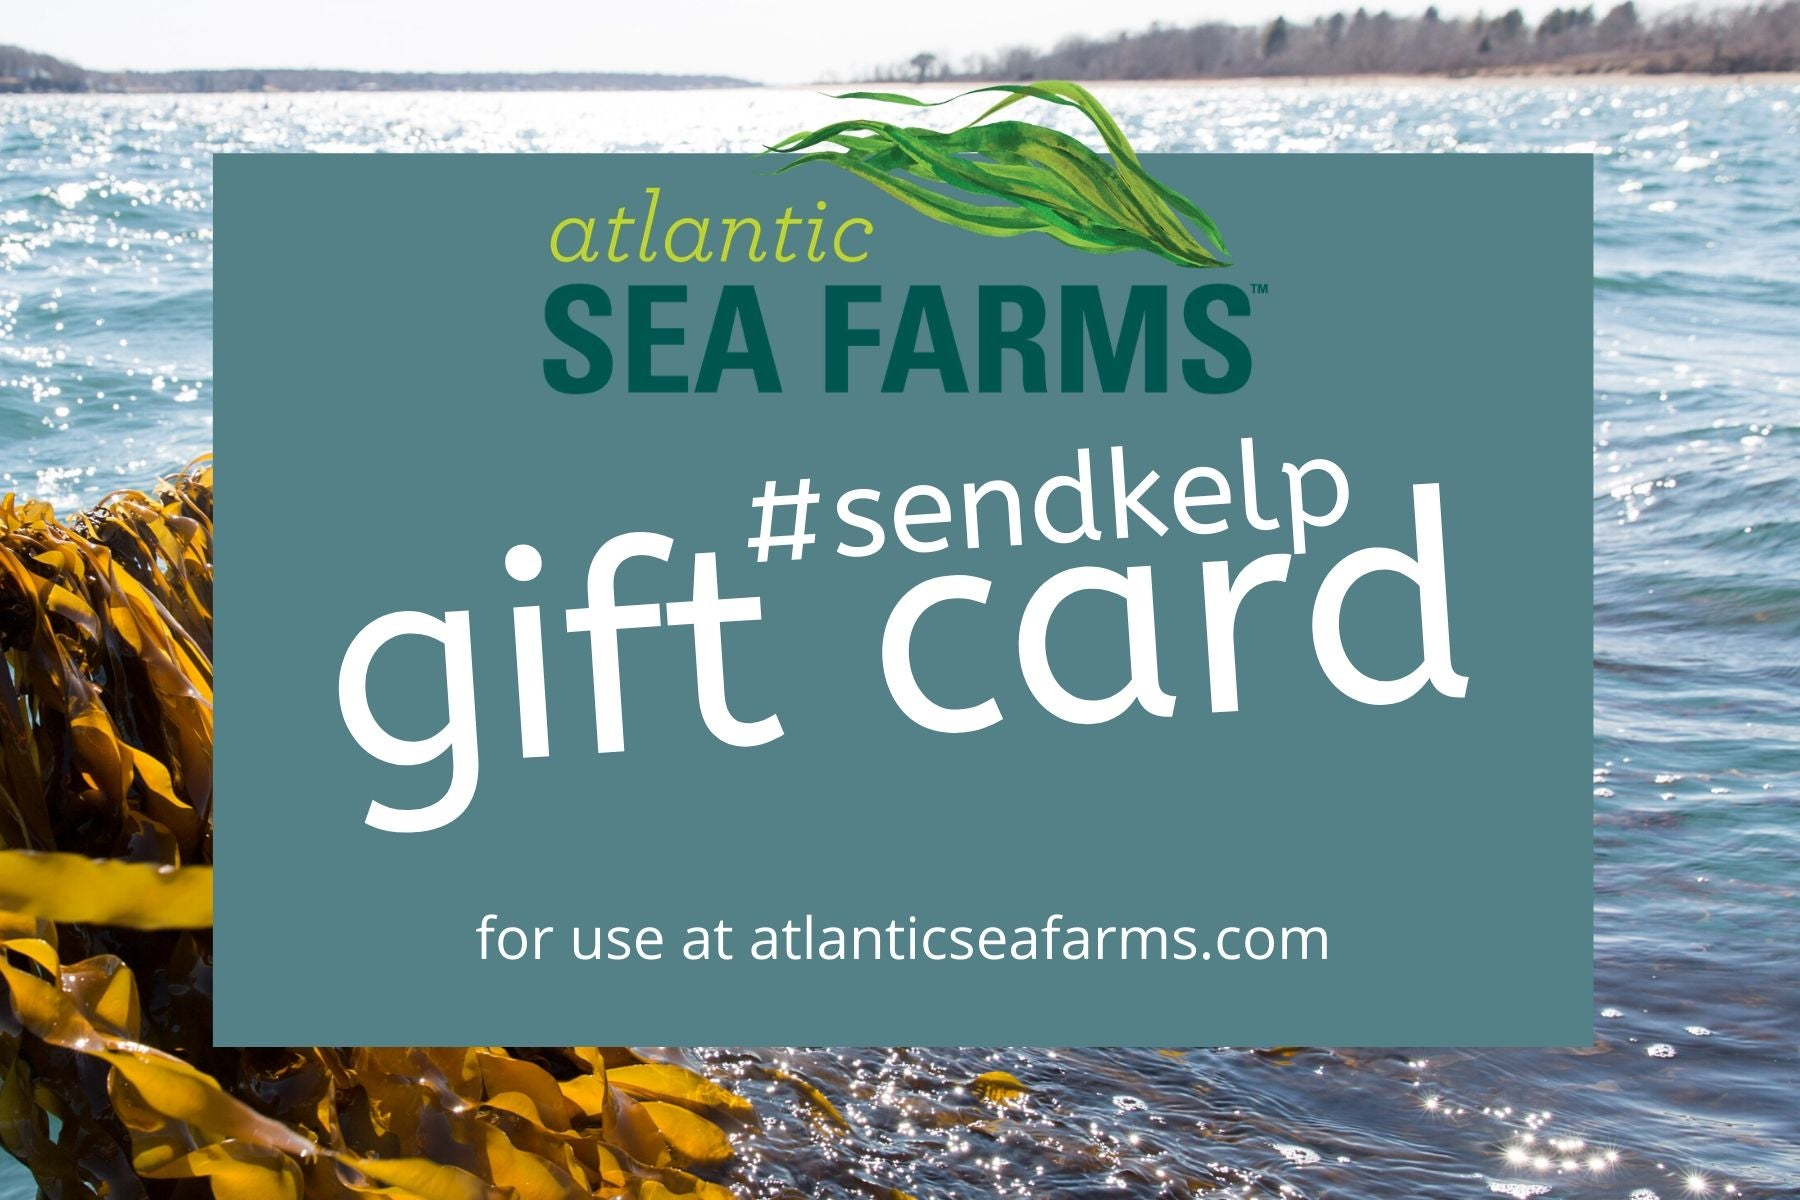 Atlantic Sea Farms Gift Card